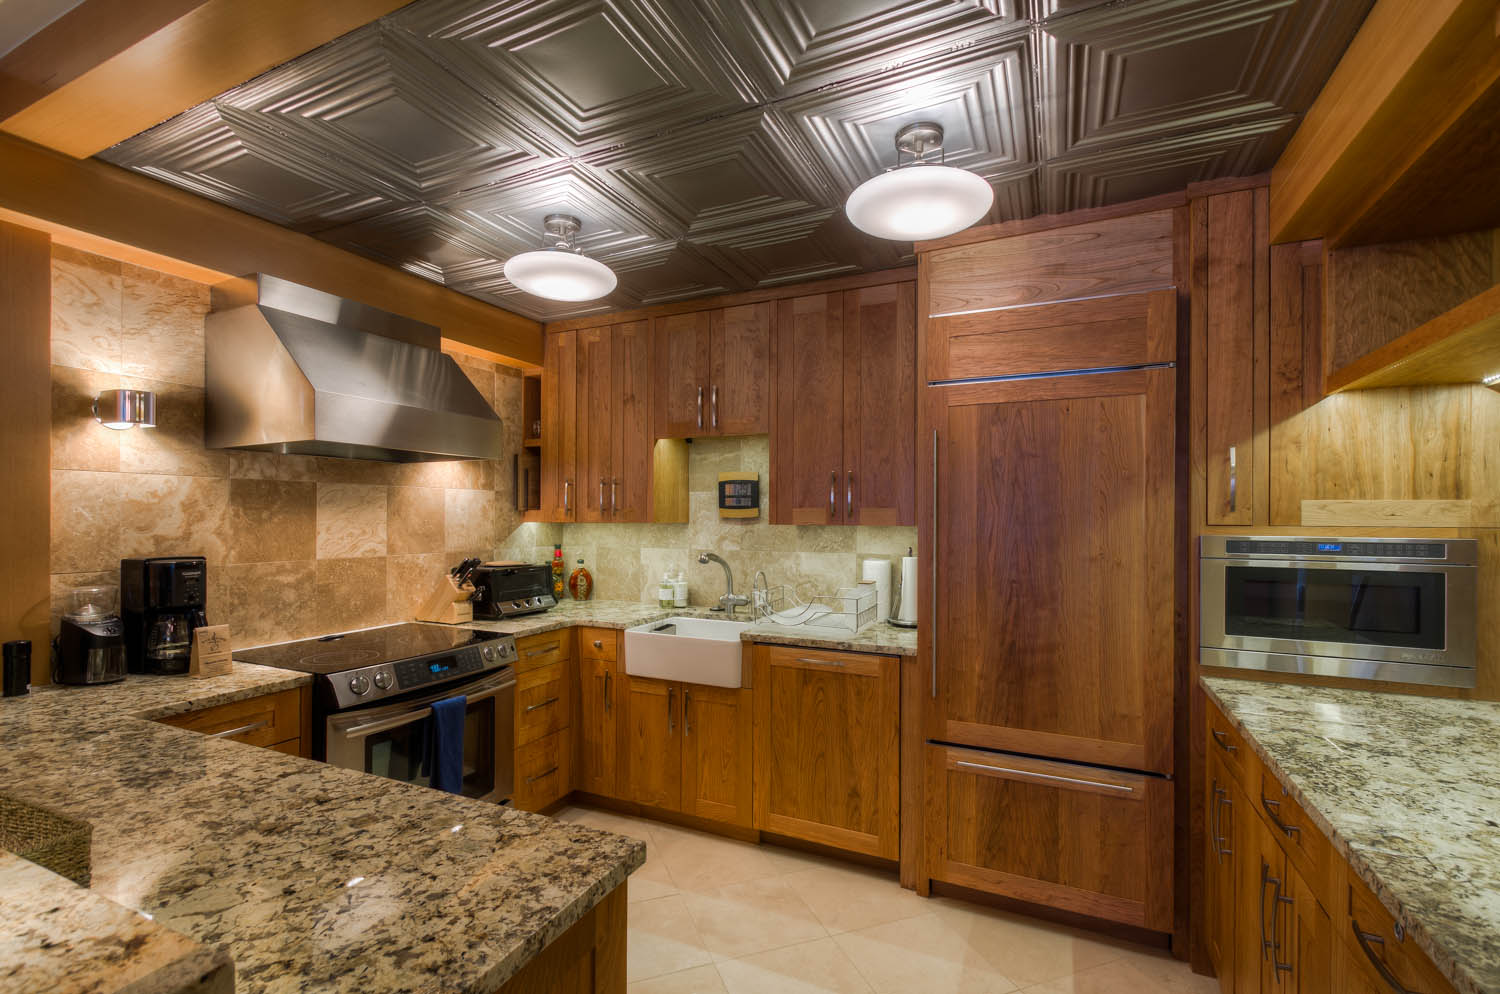 Refrigerator, Oven, and Coffee Maker in the Kitchen